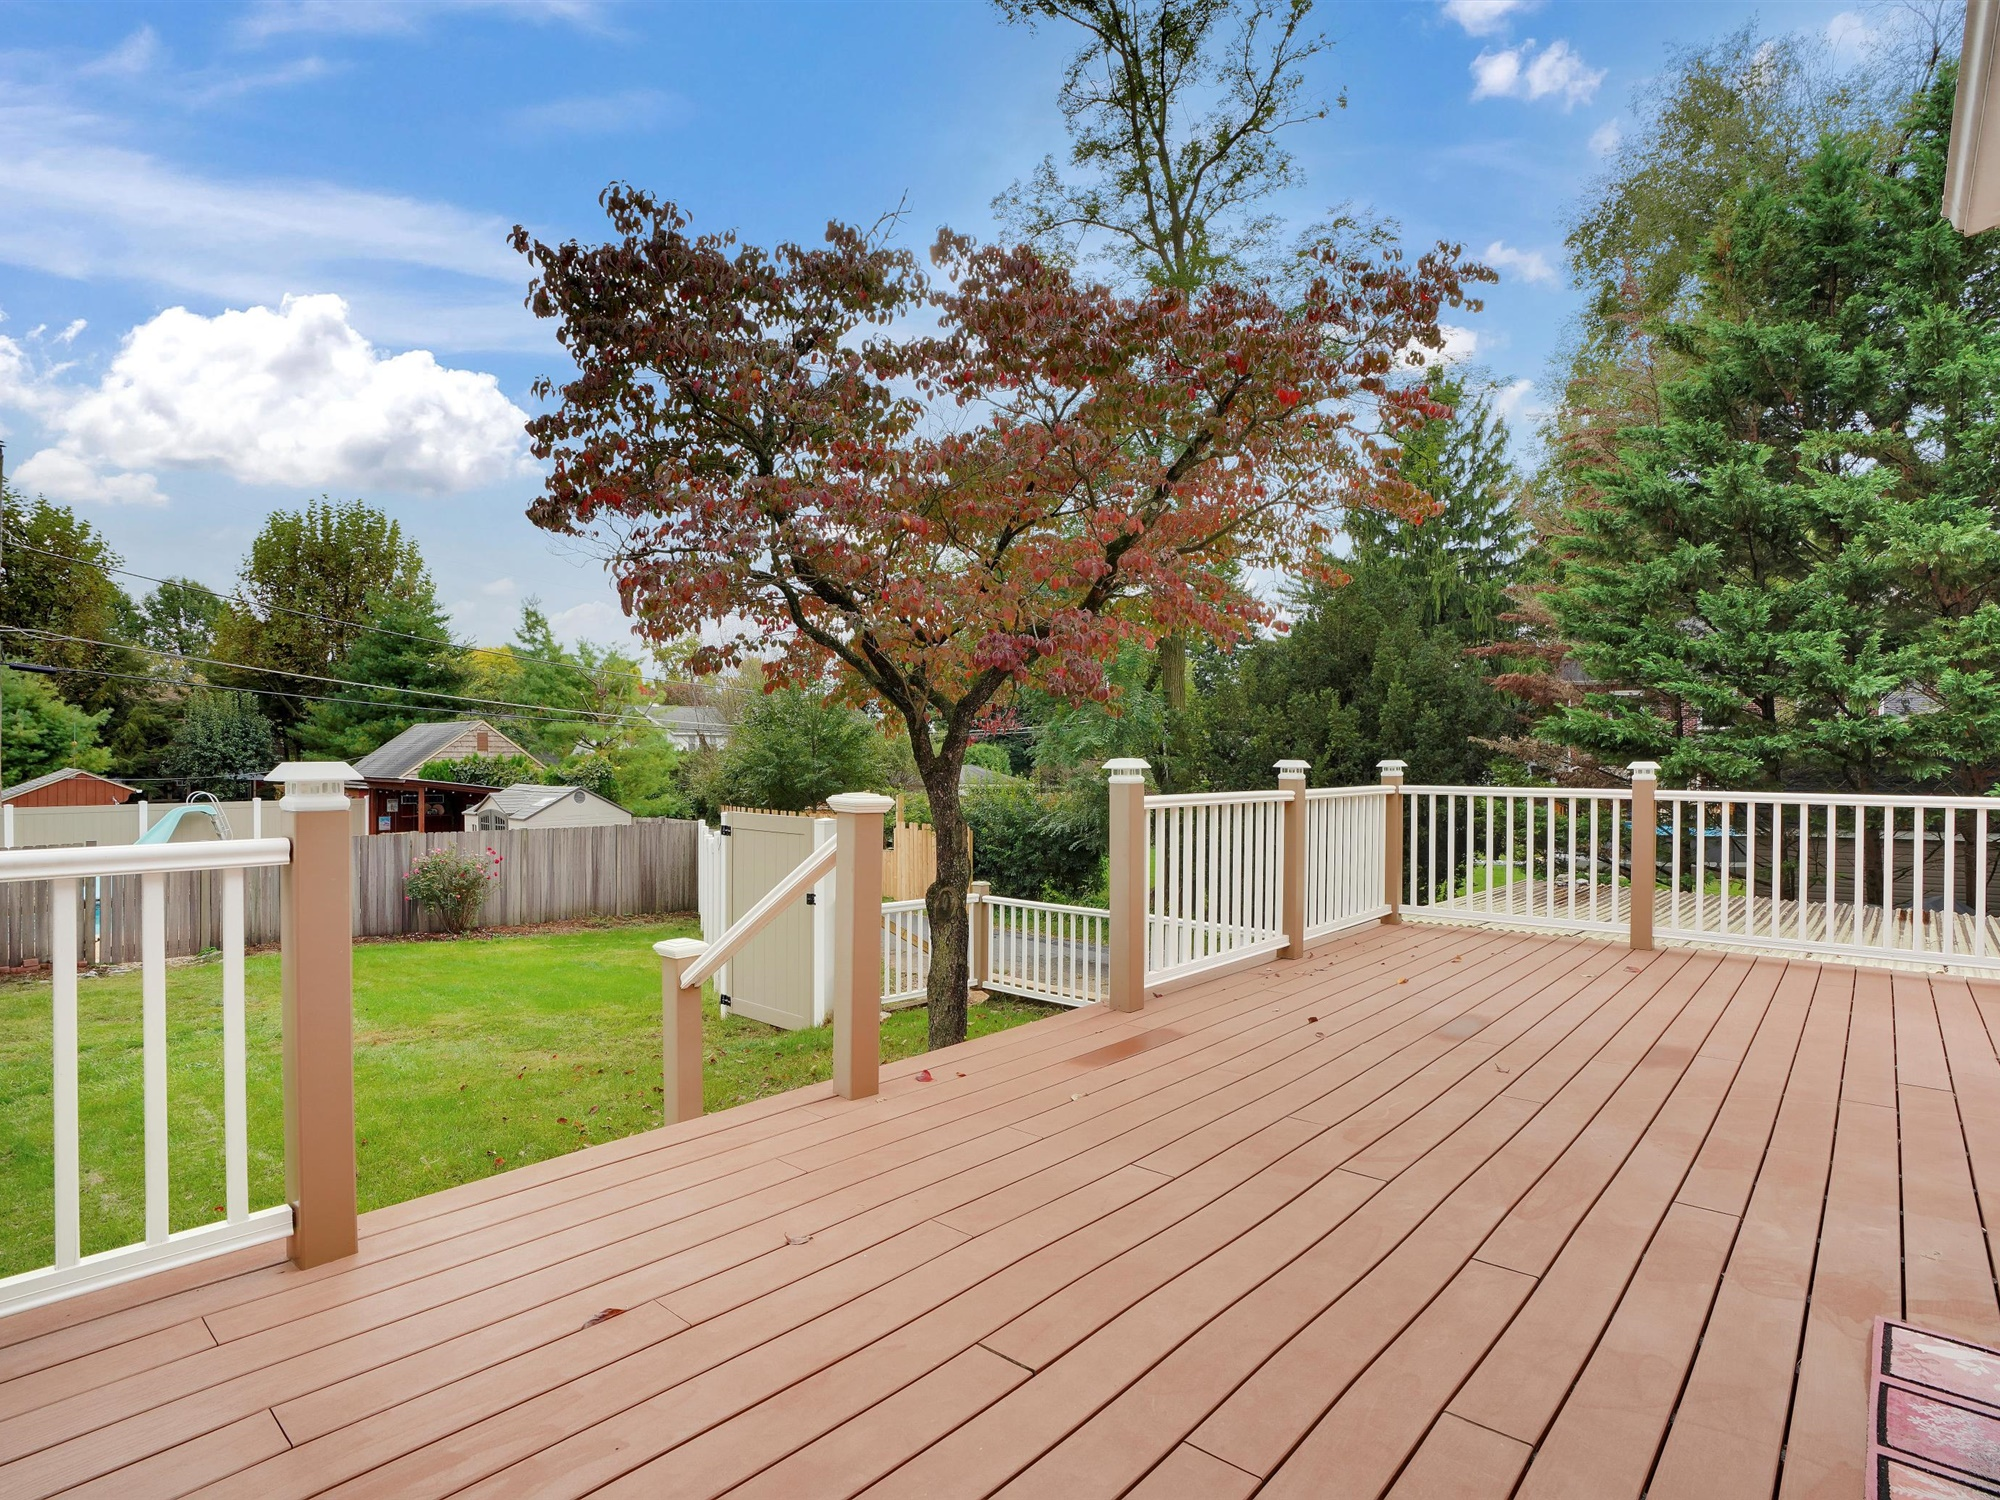 2022 Kline St - Charming Single Family home with large deck